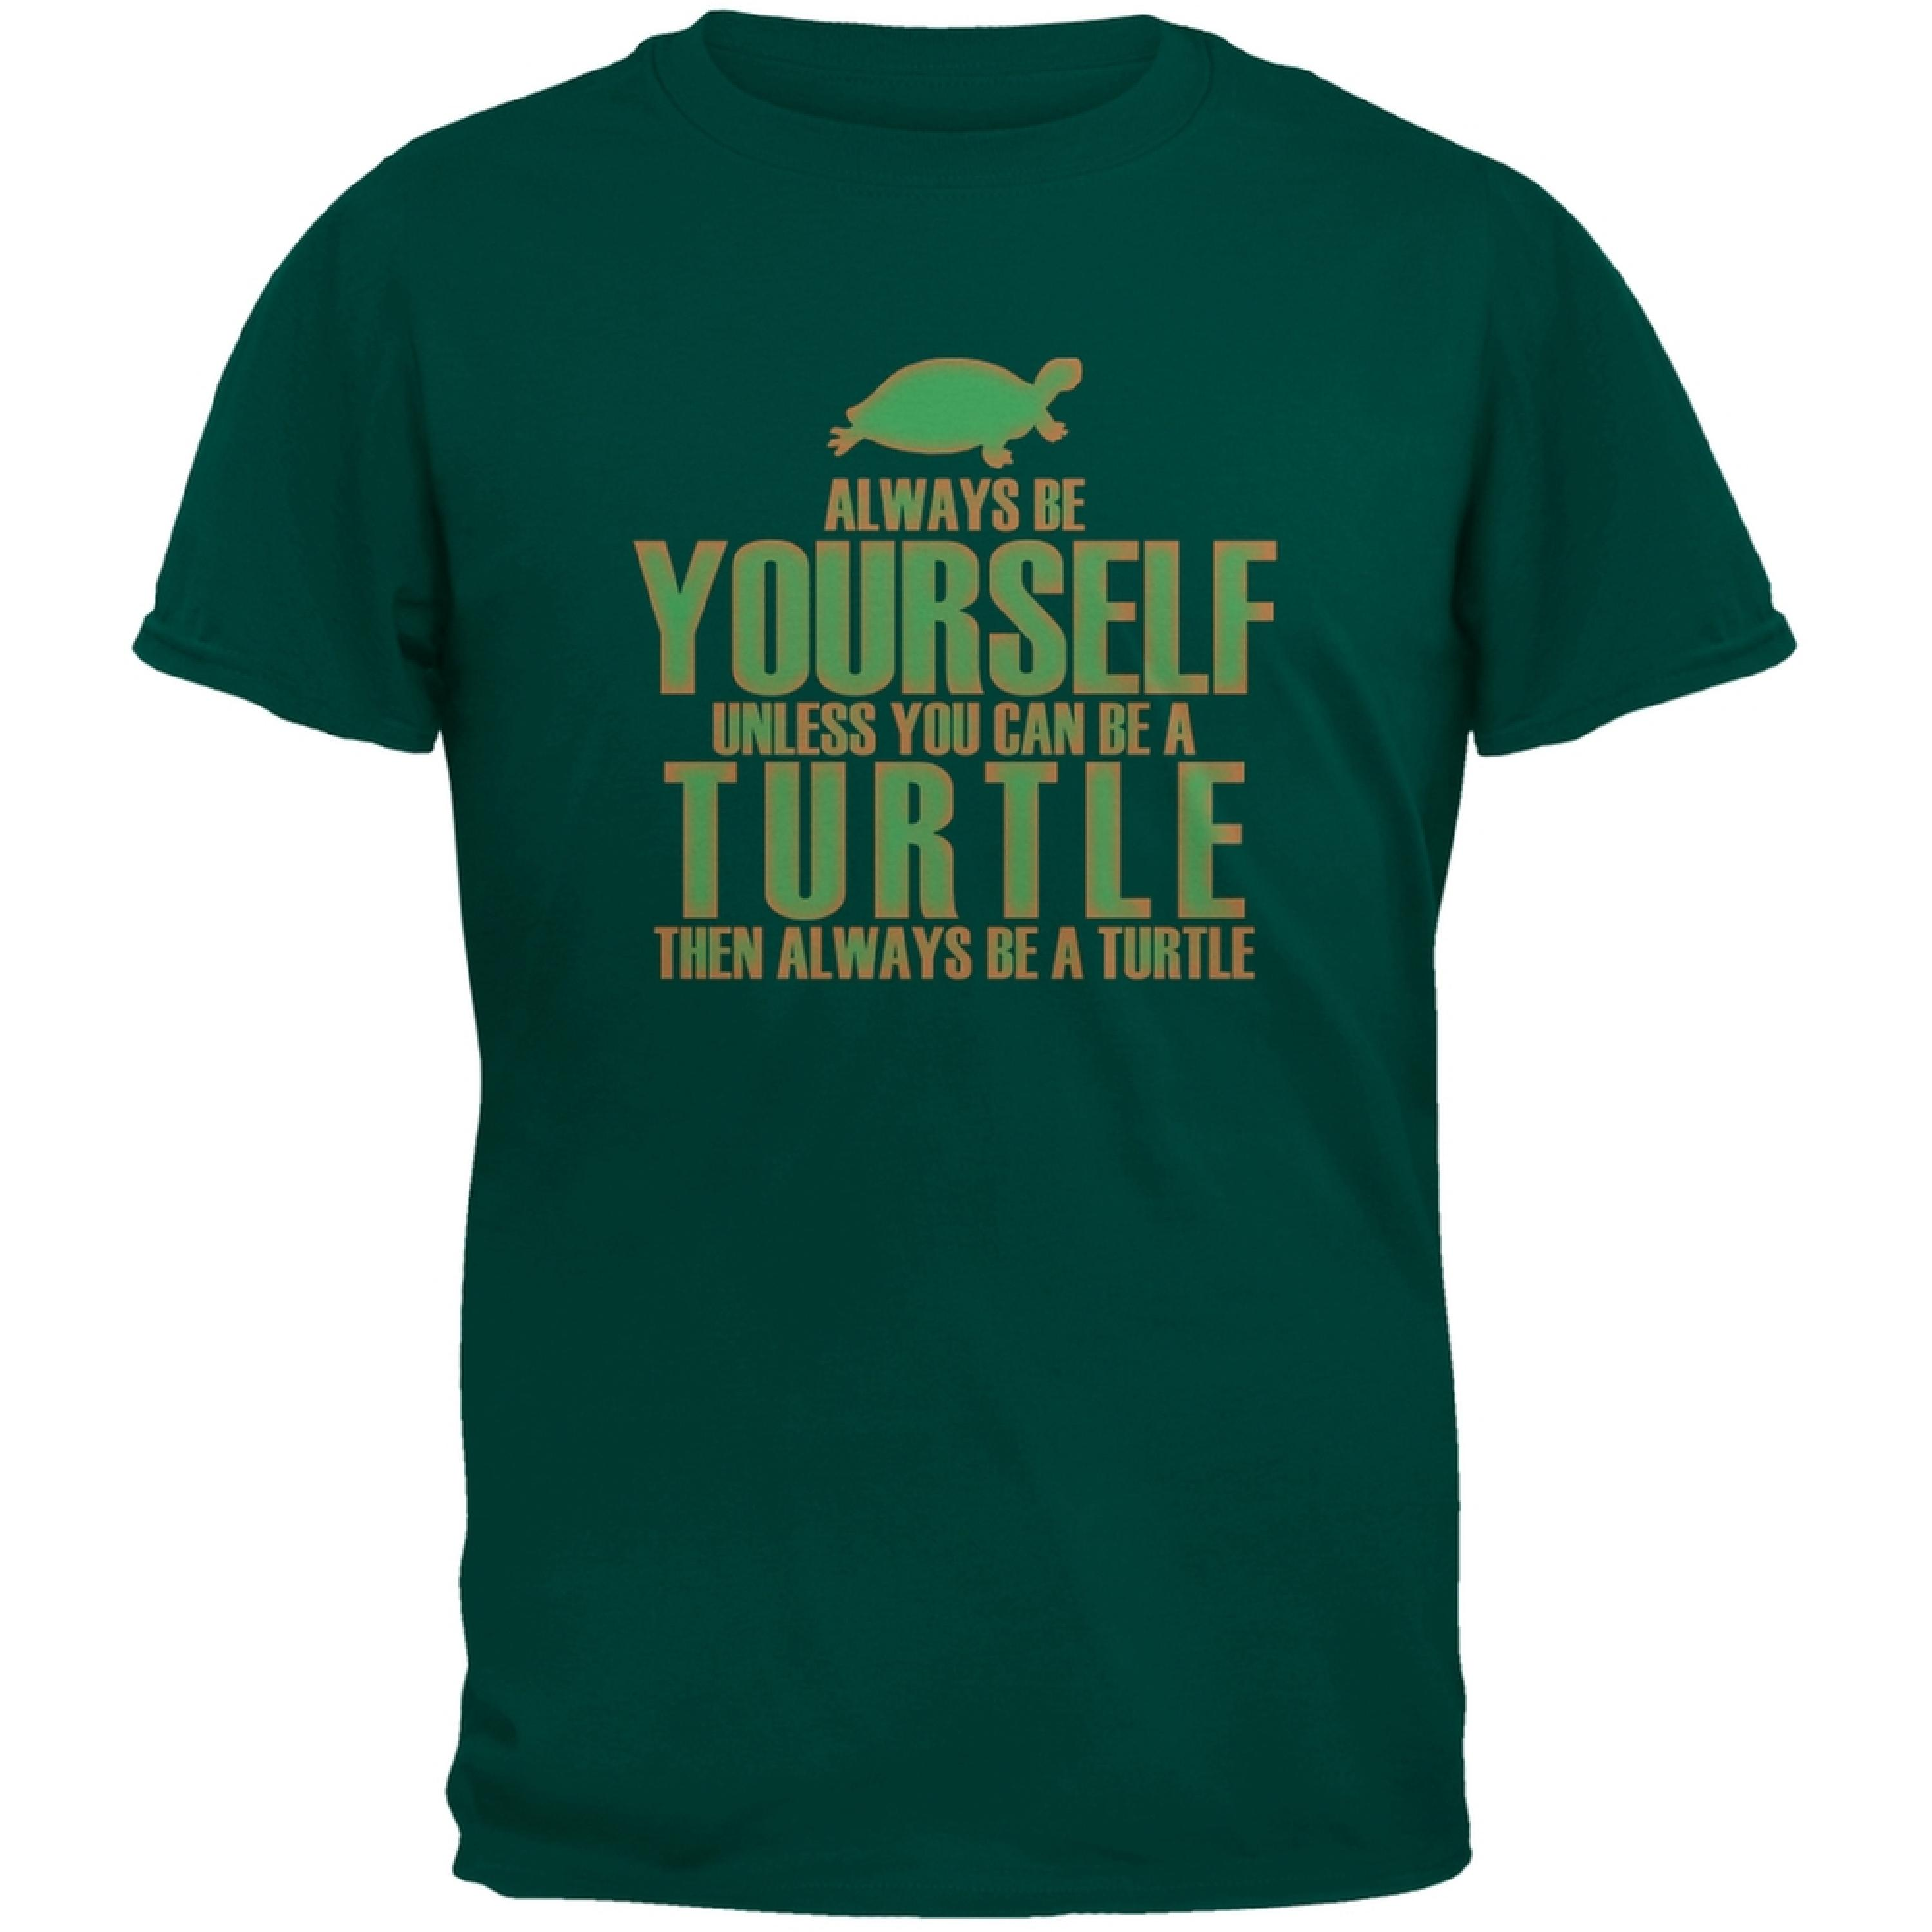 Always Be Yourself Turtle Green Youth T-Shirt